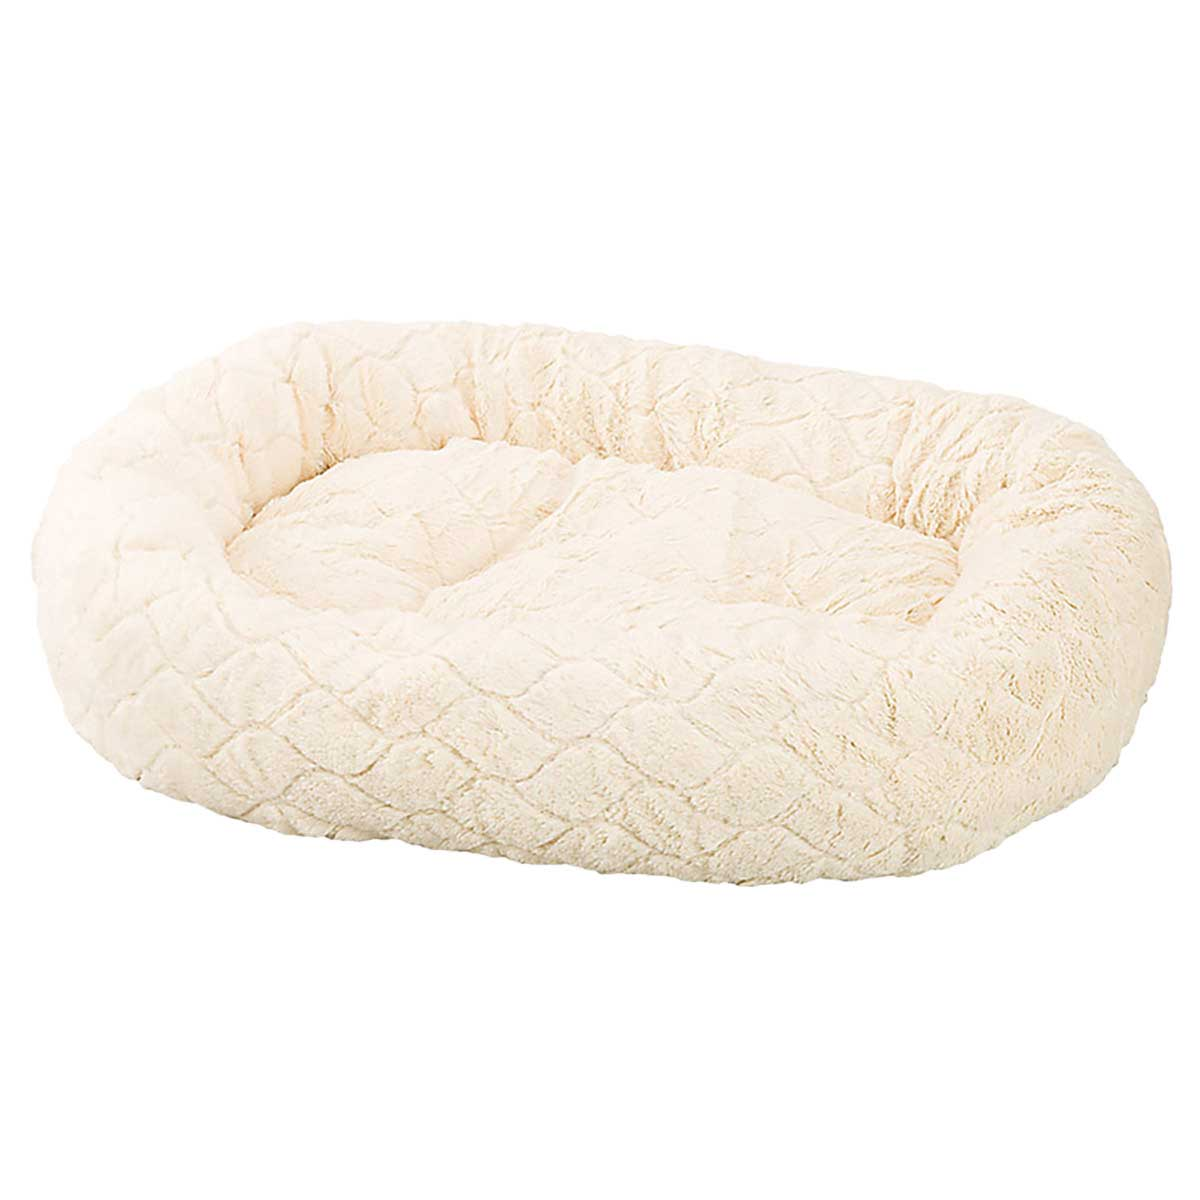 Diamond Cut Design 27 inch Cream Sleep Zone Lounger Oval Cuddler Bed for Pets